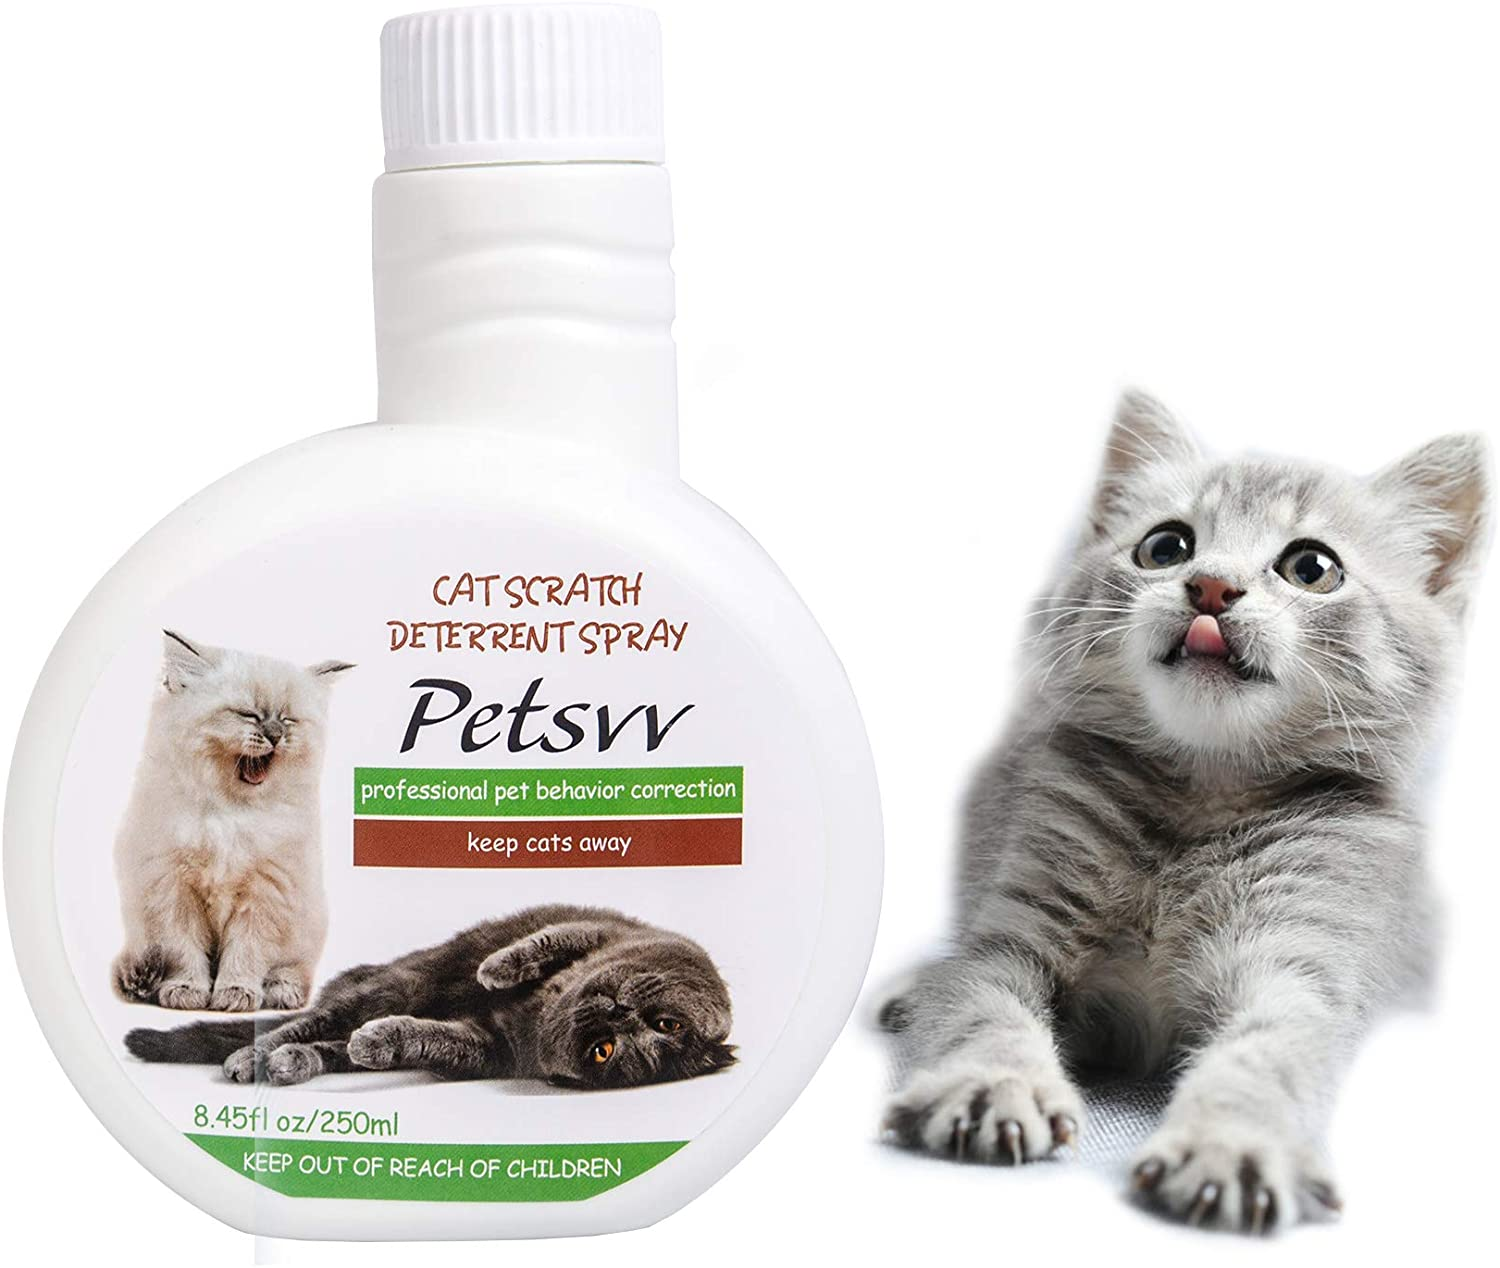 Cat Scratch Deterrent Spray, Anti Scratch Cat Spray Safe for Plants, Furniture, Floors, Non-Toxic, No Alcohol